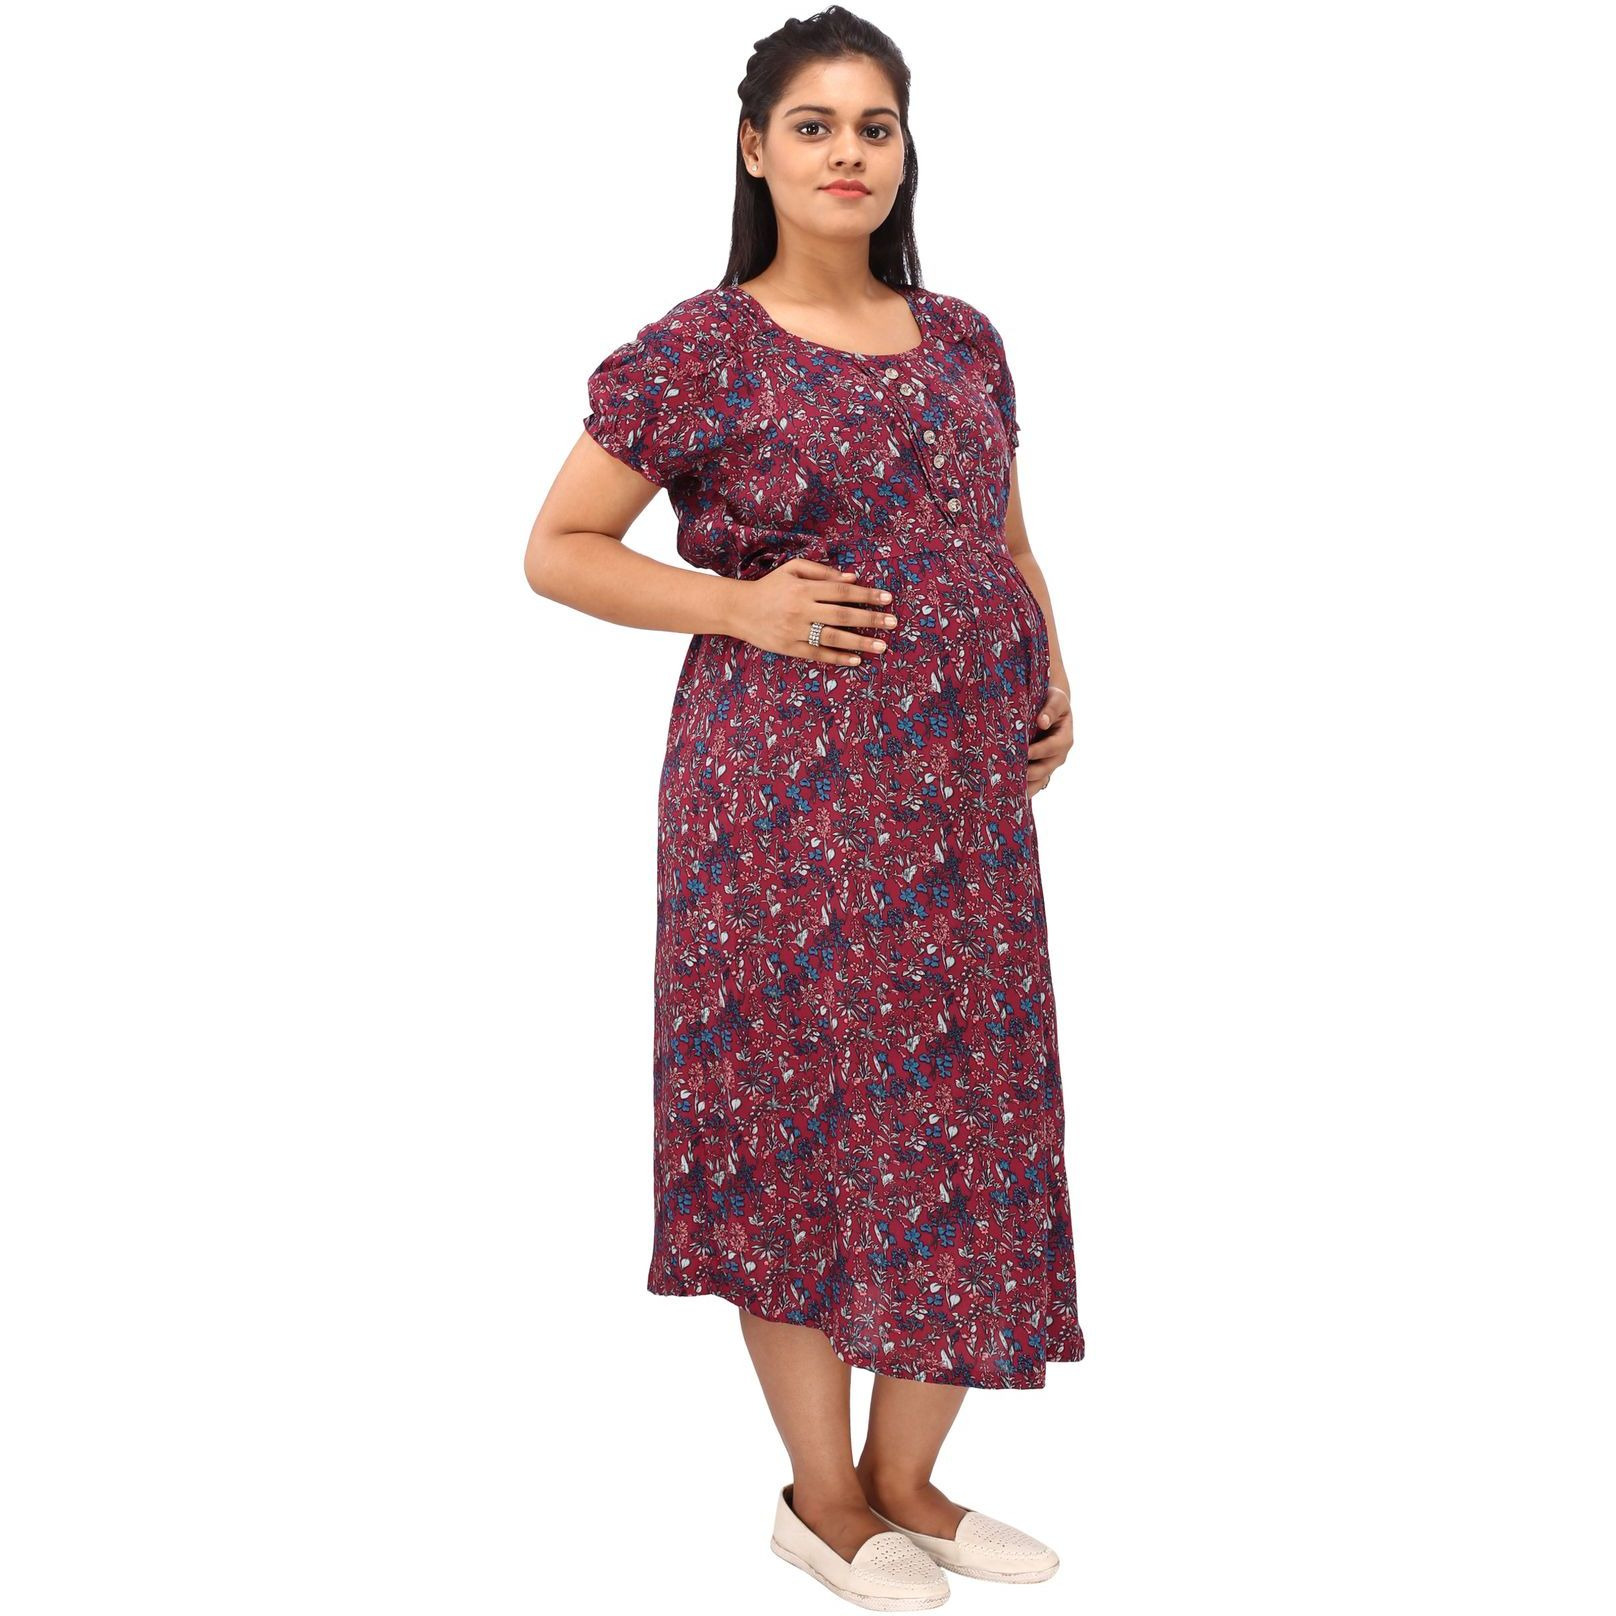 Mamma's Maternity Women's Rayon Maroon Printed Maternity Dress (Size:L)